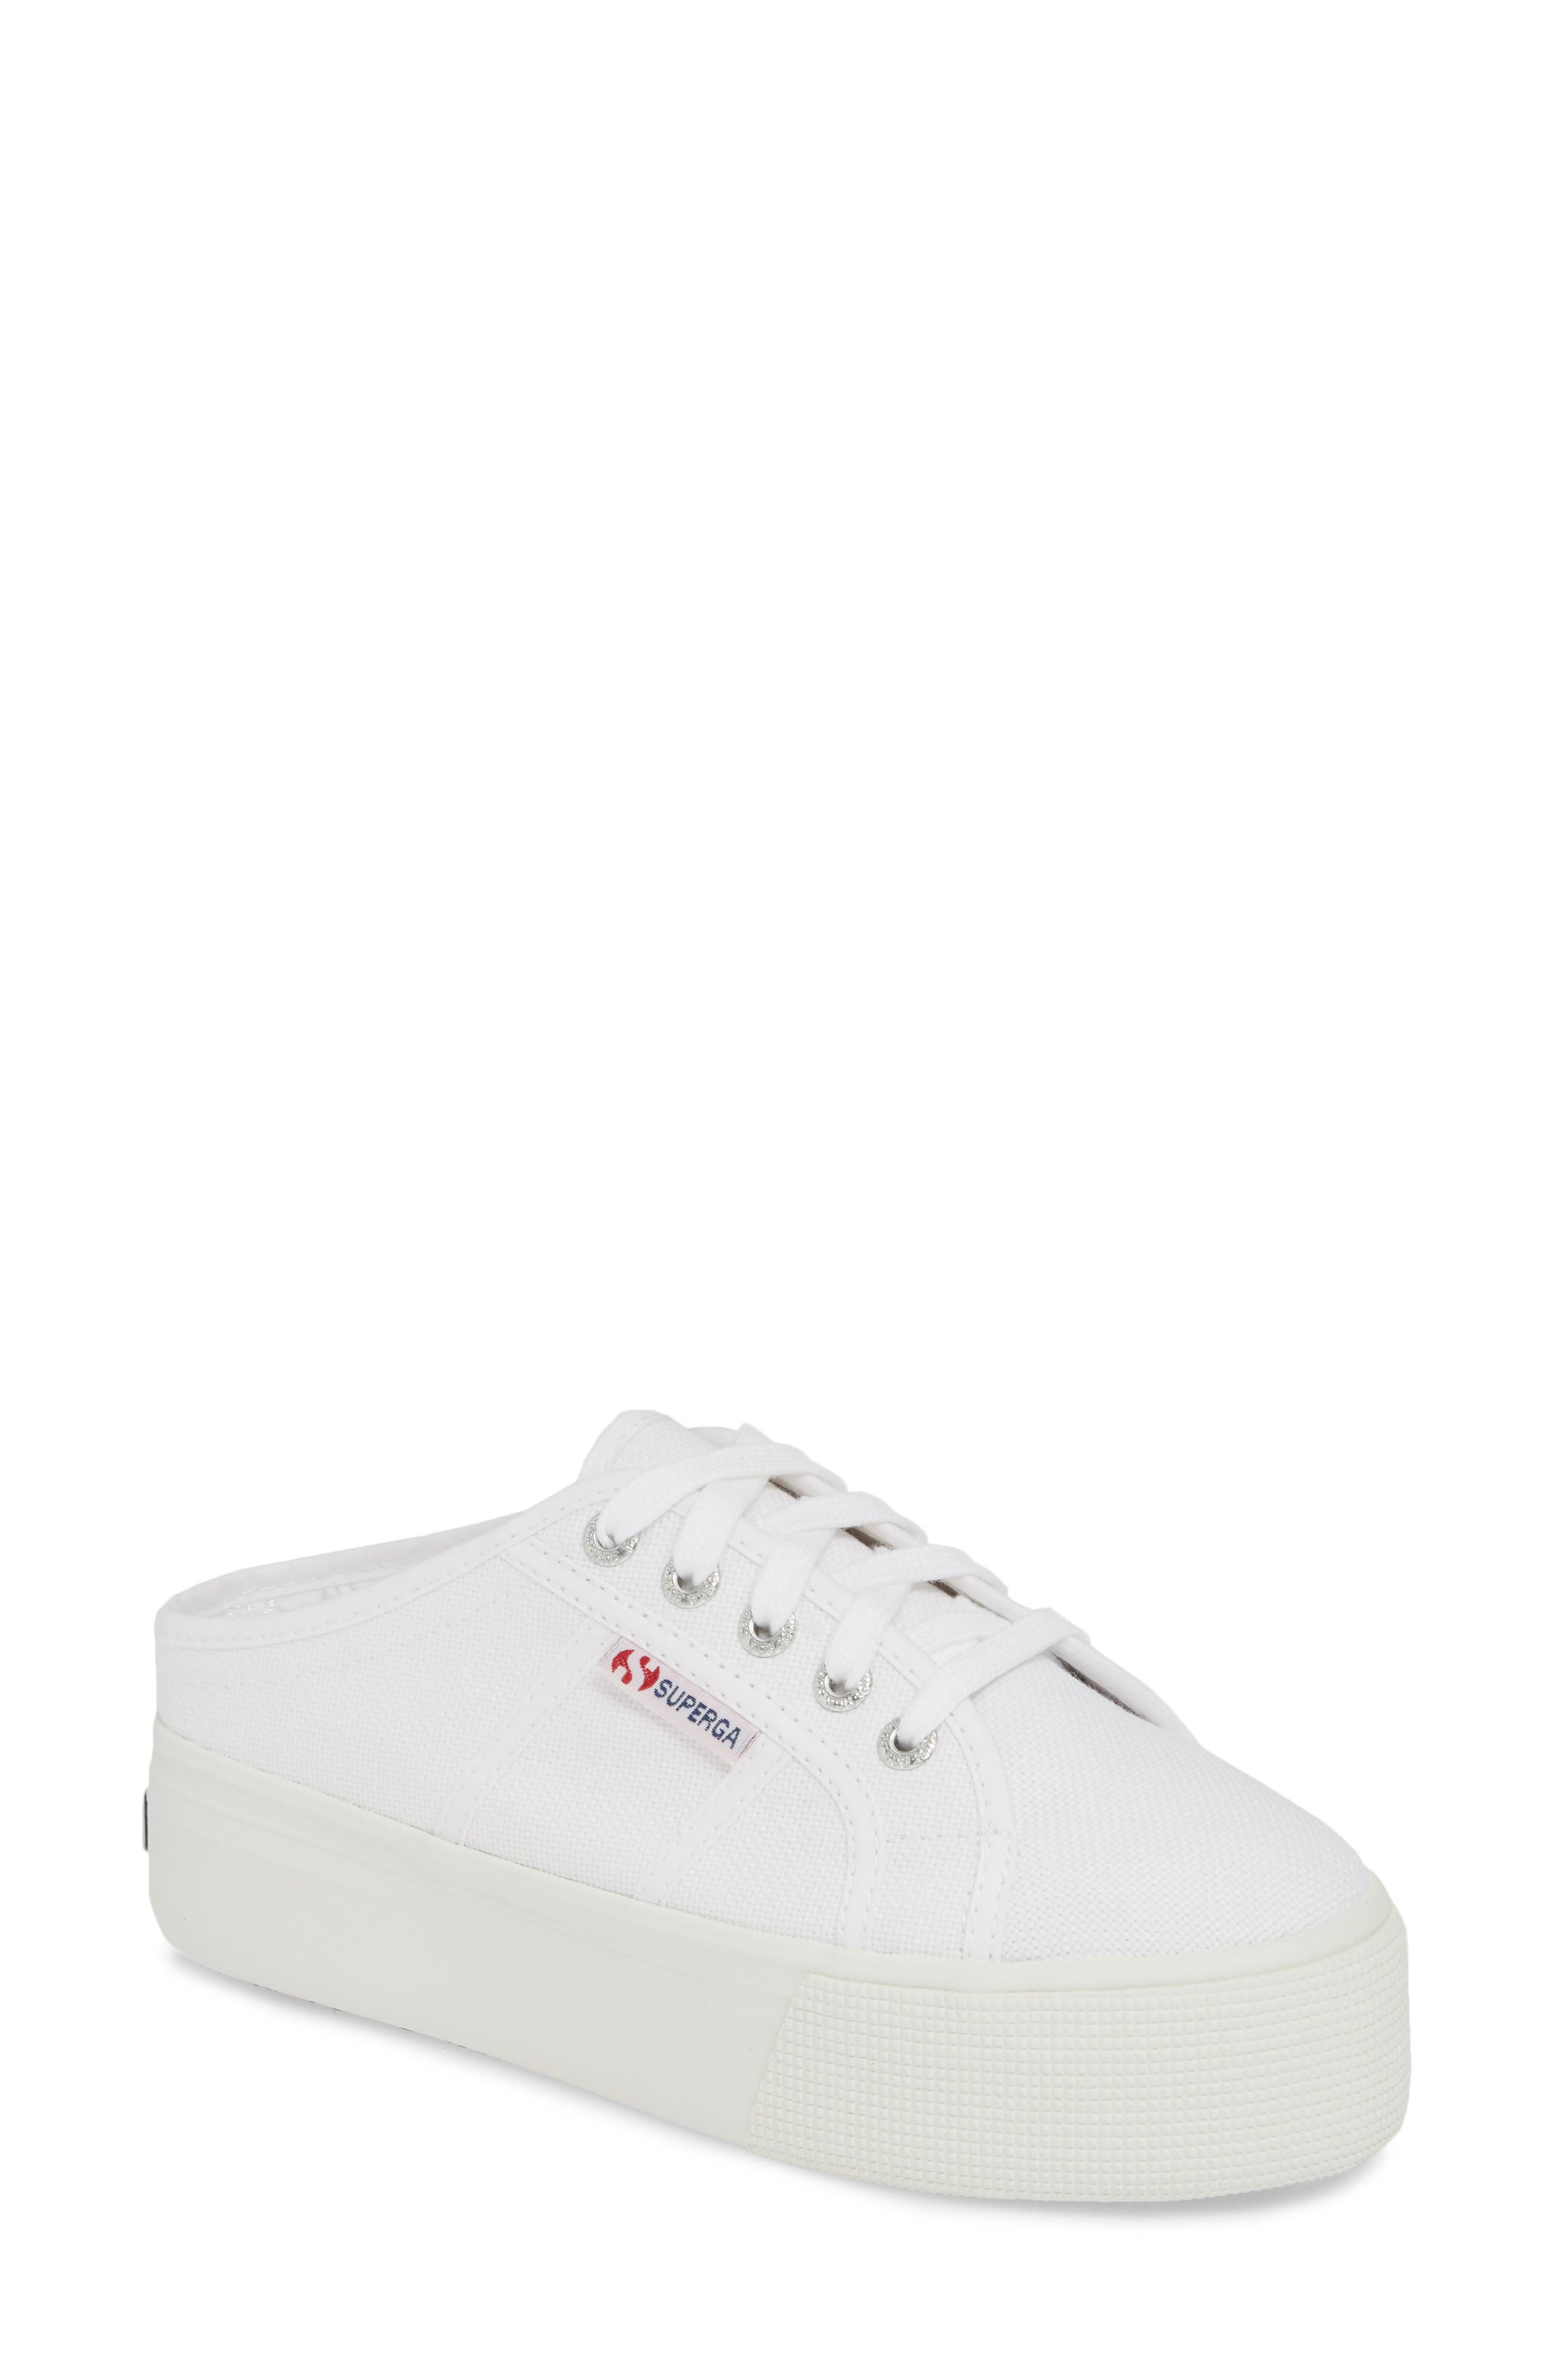 c6b920046965 Superga Shoes   Sneakers